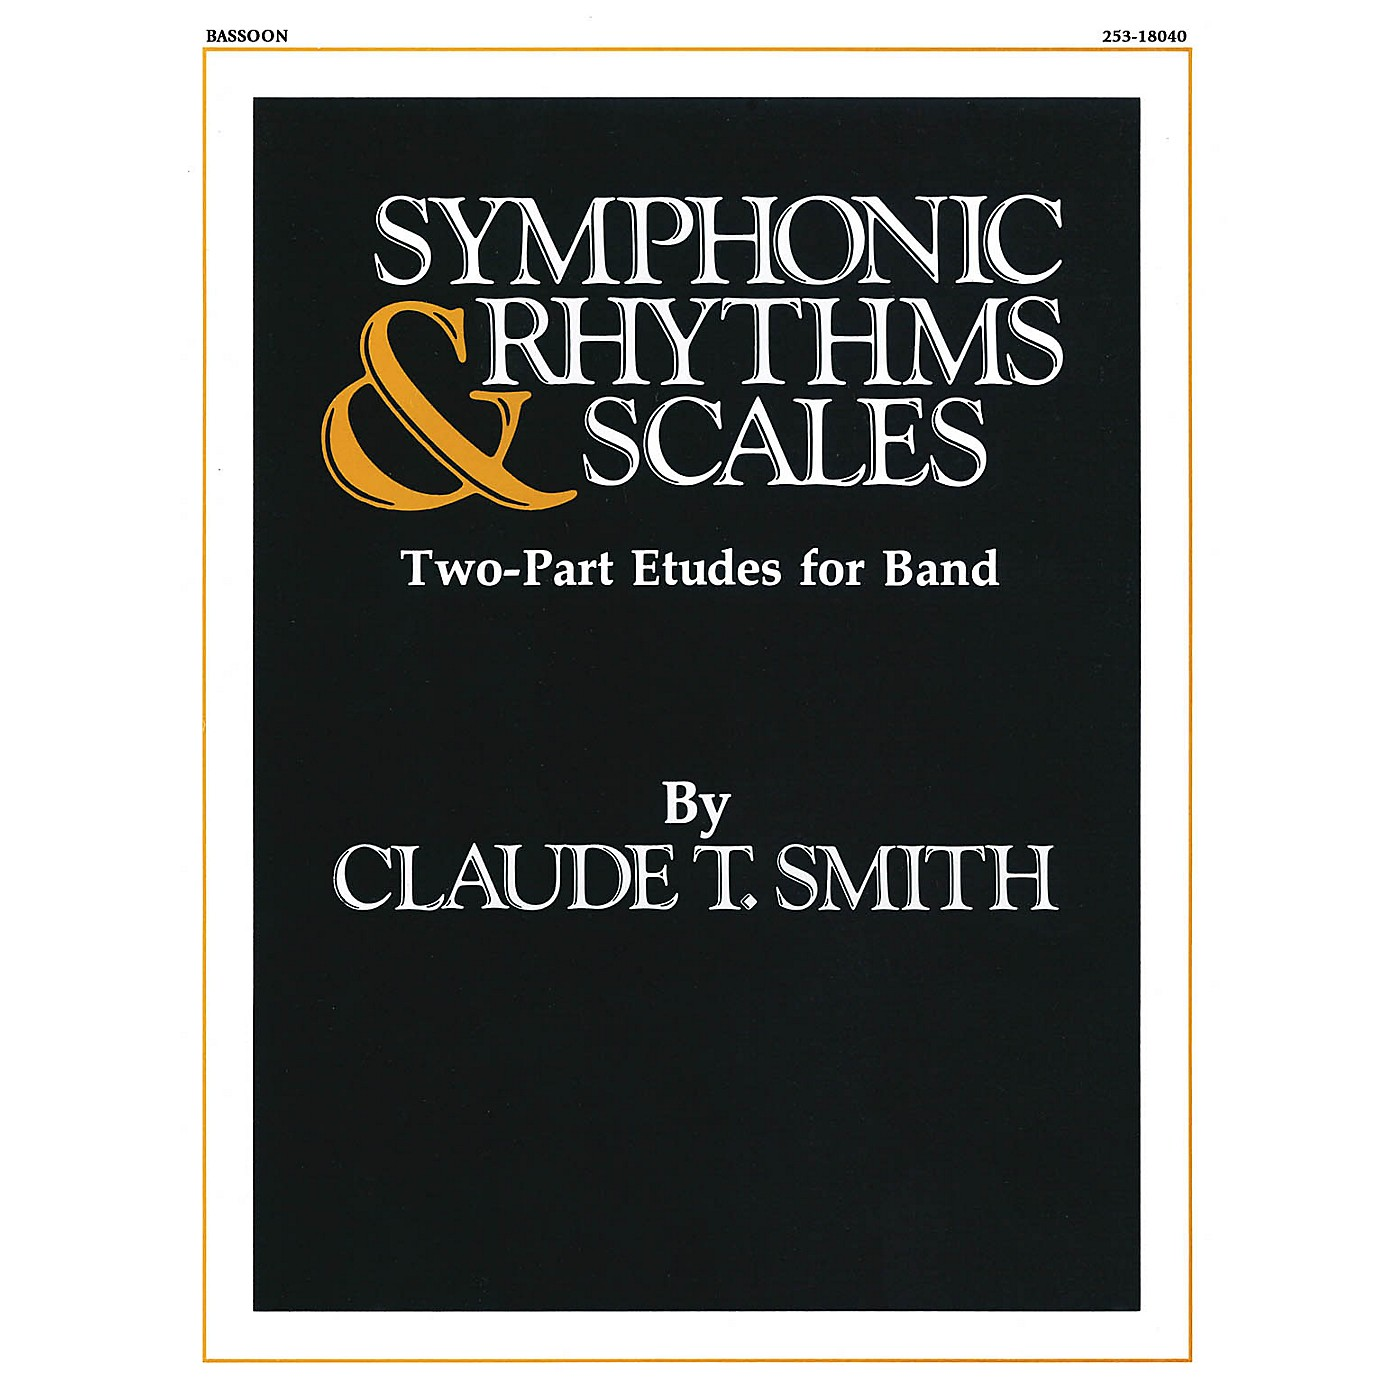 Hal Leonard Symphonic Rhythms & Scales (Two-Part Etudes for Band and Orchestra Bassoon) Concert Band Level 2-4 thumbnail